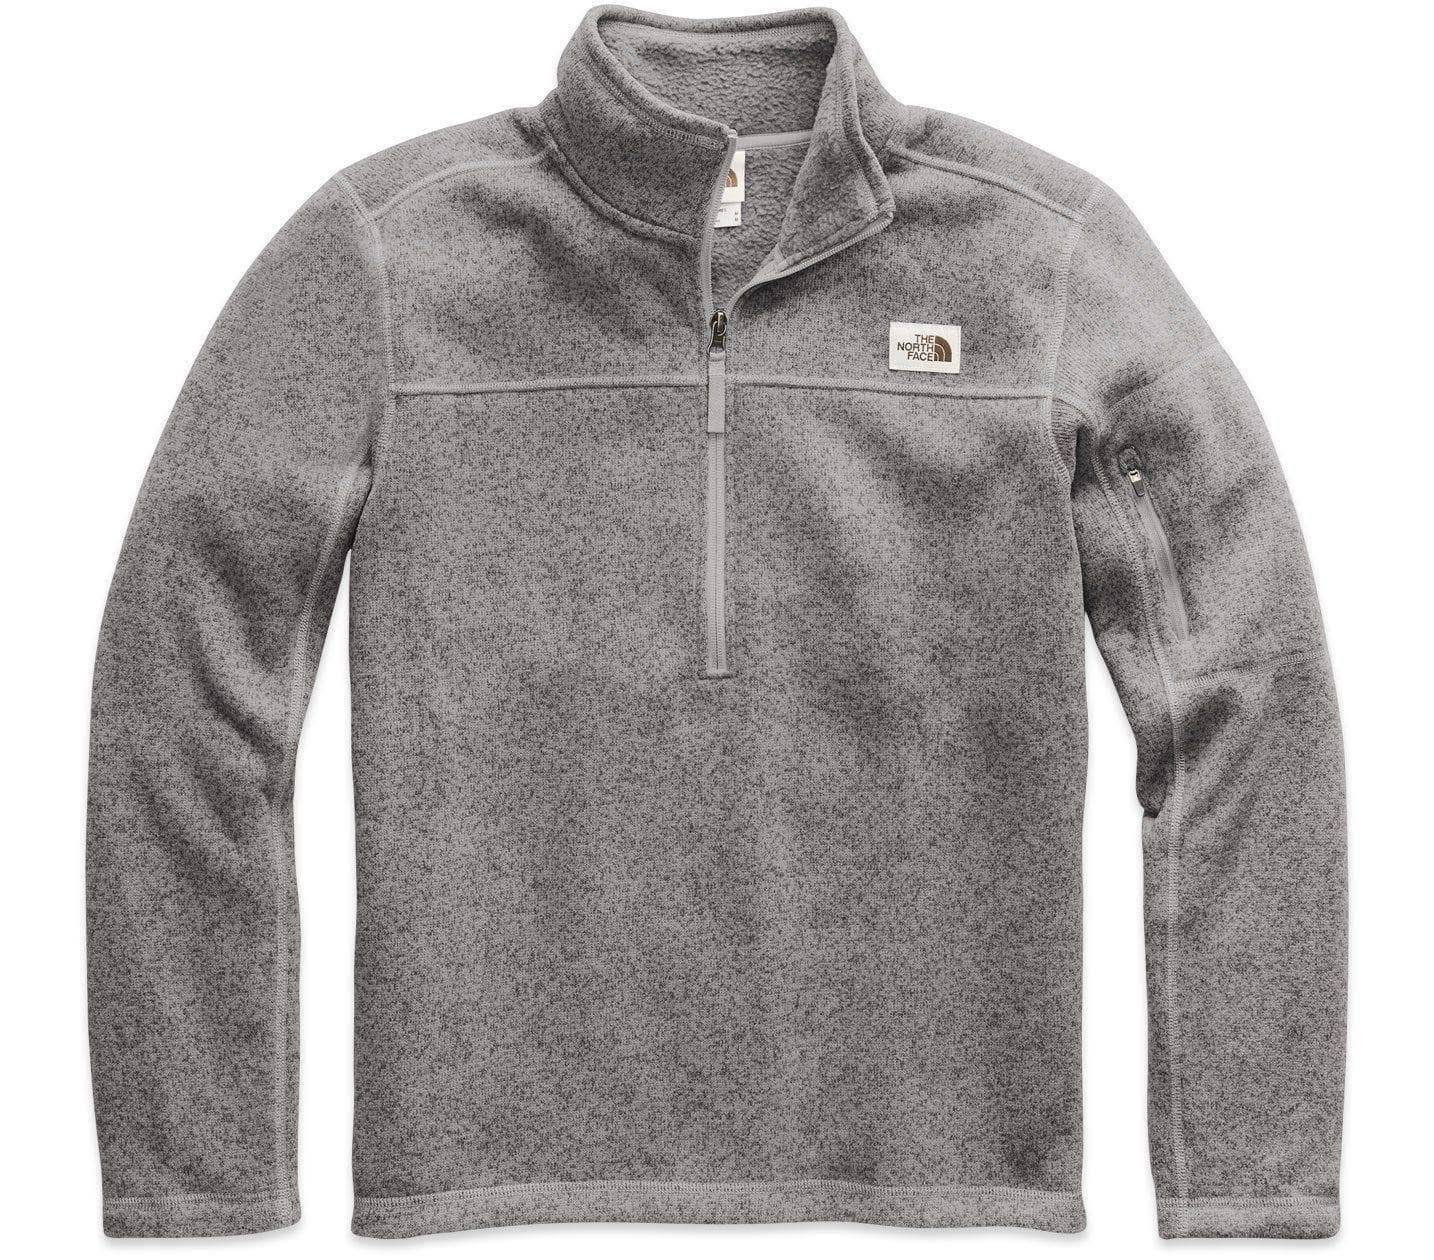 The North Face Men's Gordon Lyons 1/4 Zip TNF Medium Grey Heather XXL